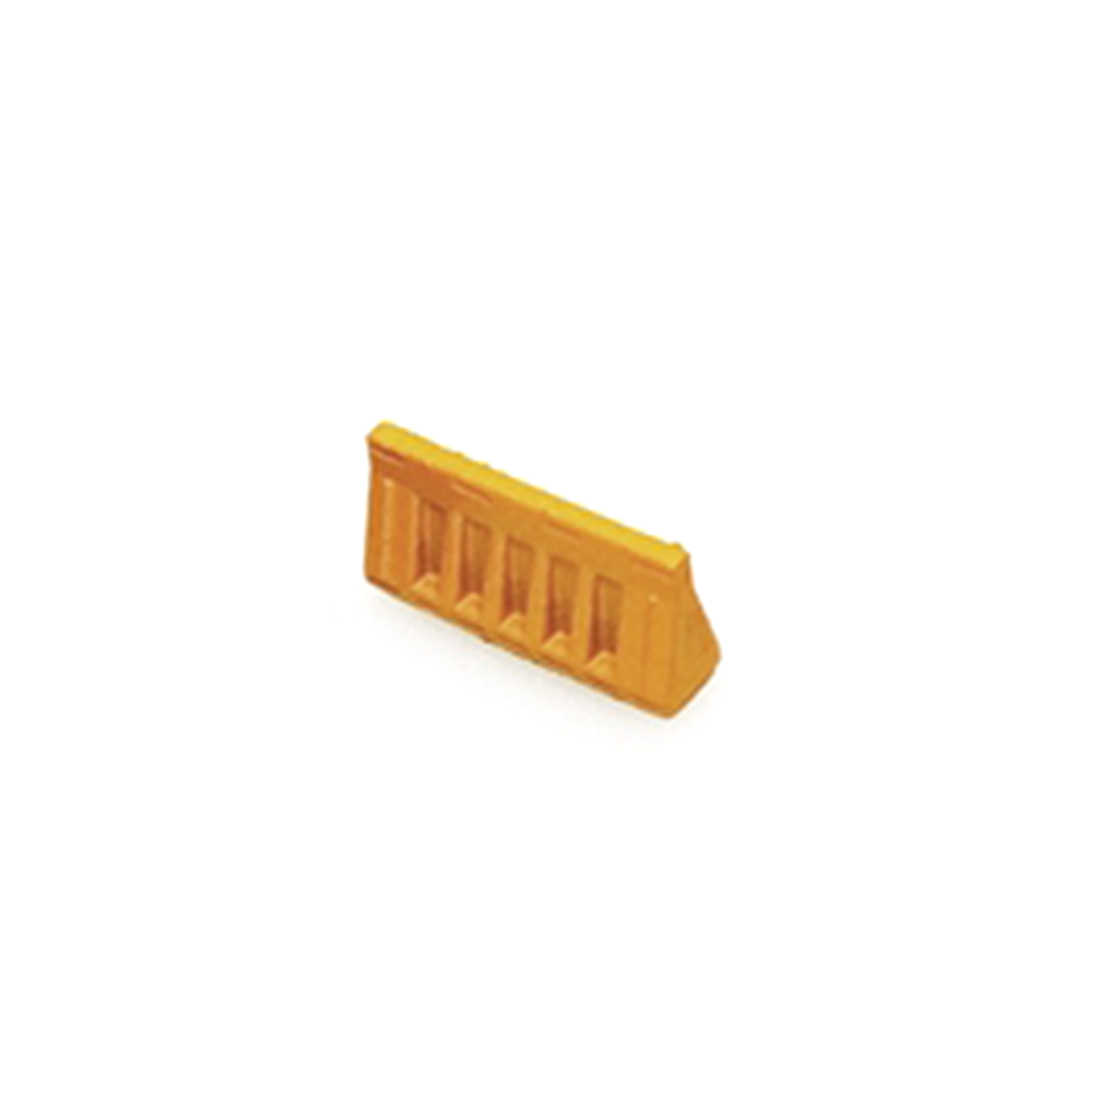 1:87 HO Scale Simulation Highway Guardrail Sand Table Train Model Scene Station Highway Ornament - Yellow/Red